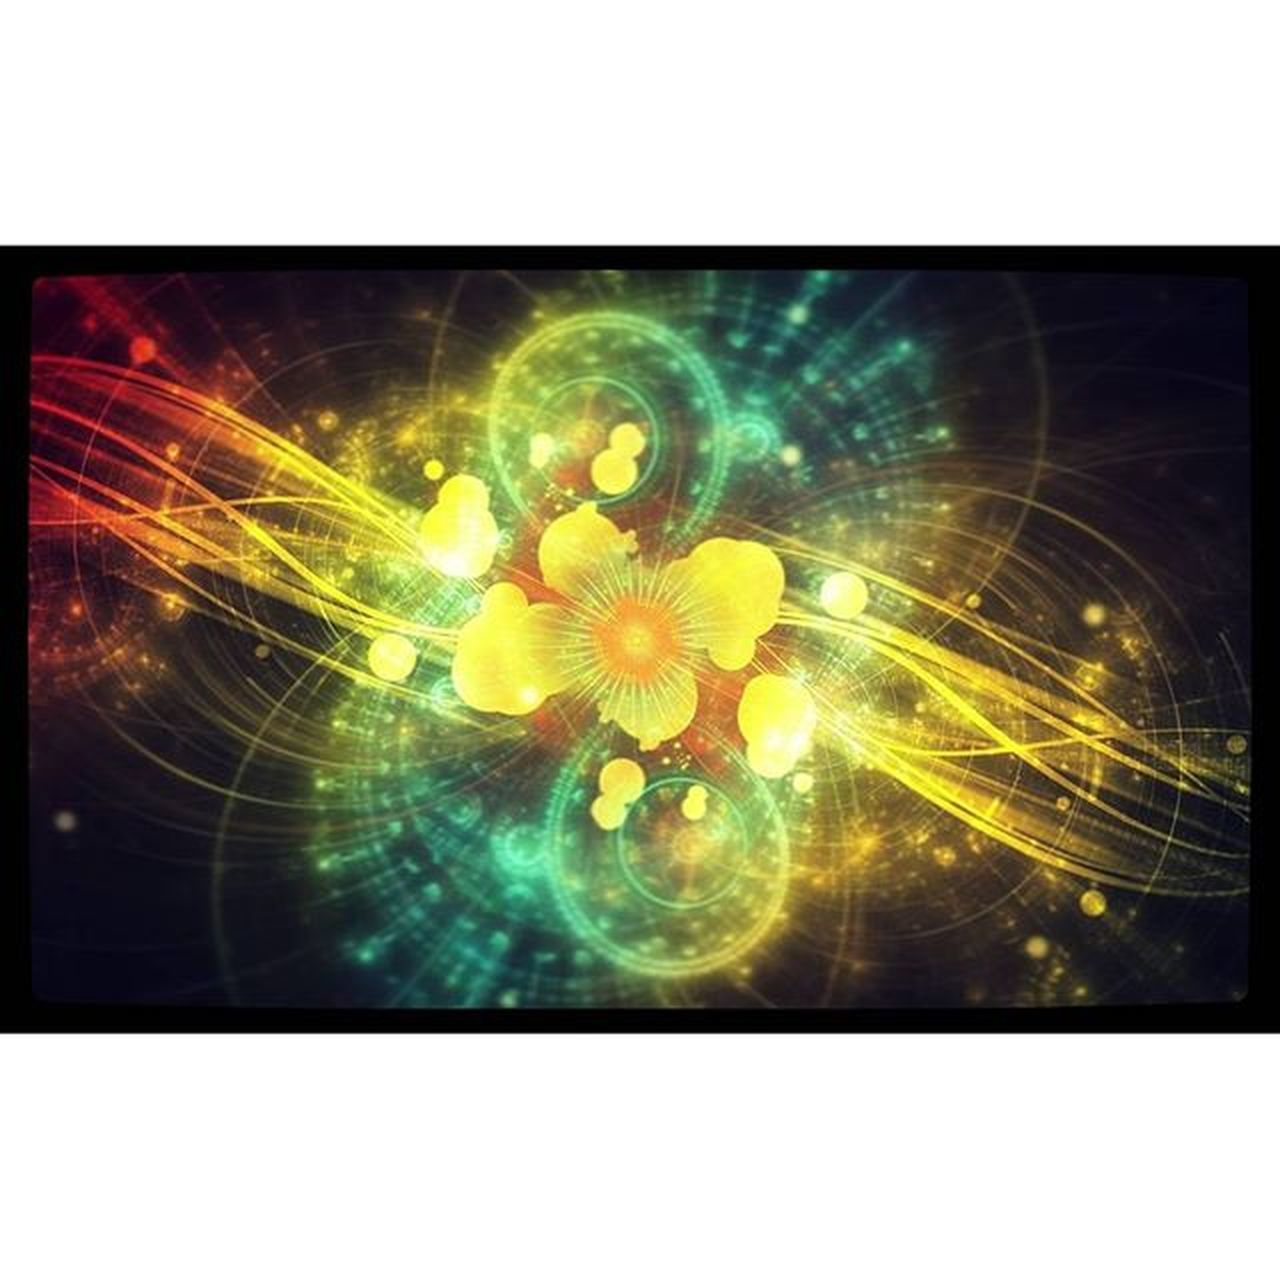 illuminated, abstract, no people, yellow, night, flower, close-up, astronomy